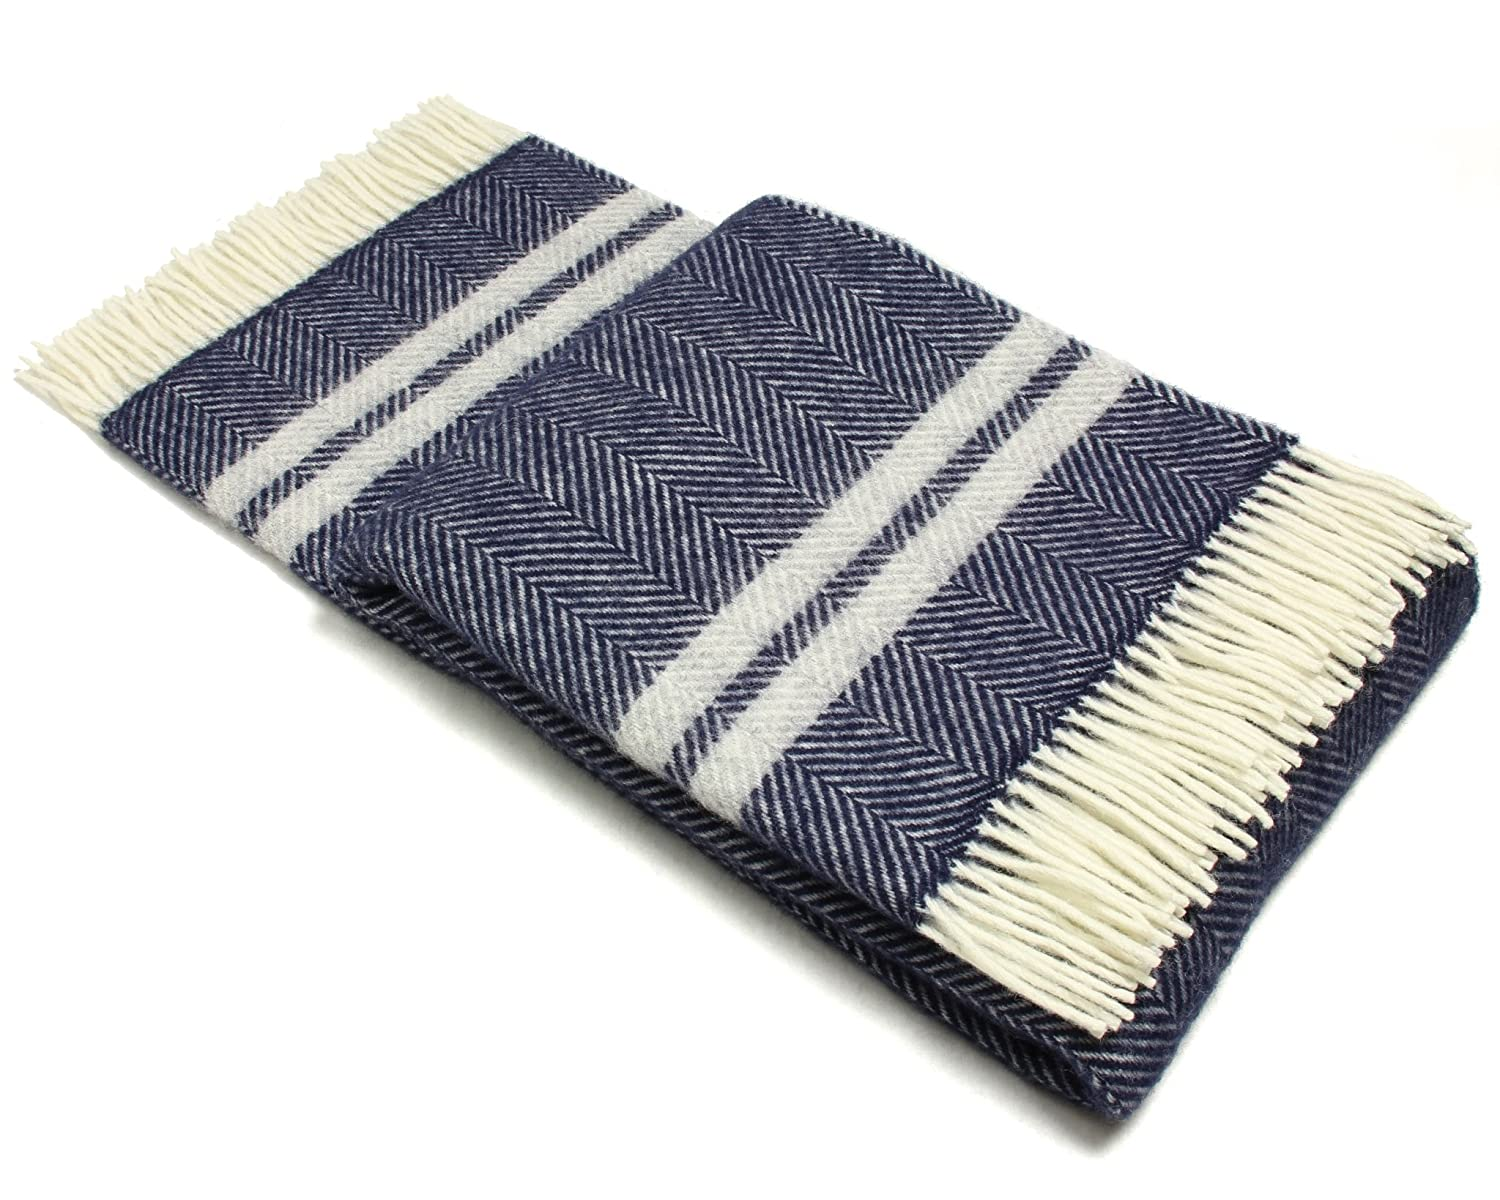 amazoncom wool throw blanket by tweedmill  pure new wool  - amazoncom wool throw blanket by tweedmill  pure new wool  lifestylefishbone two stripe (navy  silver gray) home  kitchen